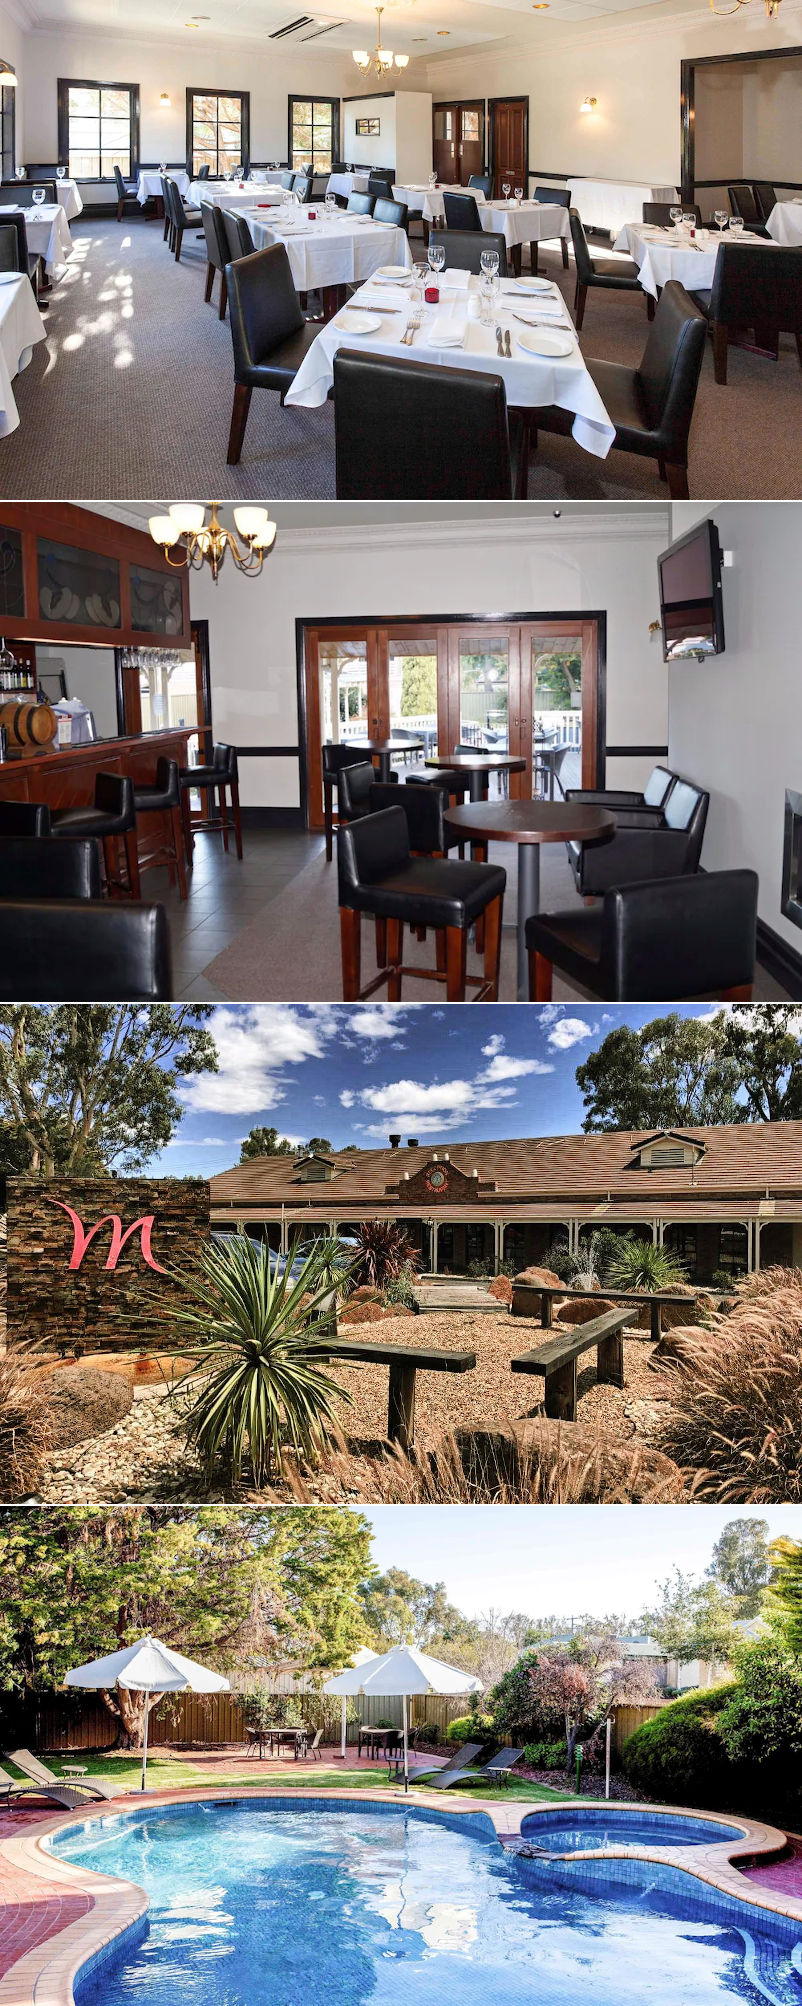 Mercure Port of Echuca Hotel - Restaurant, bar and pool